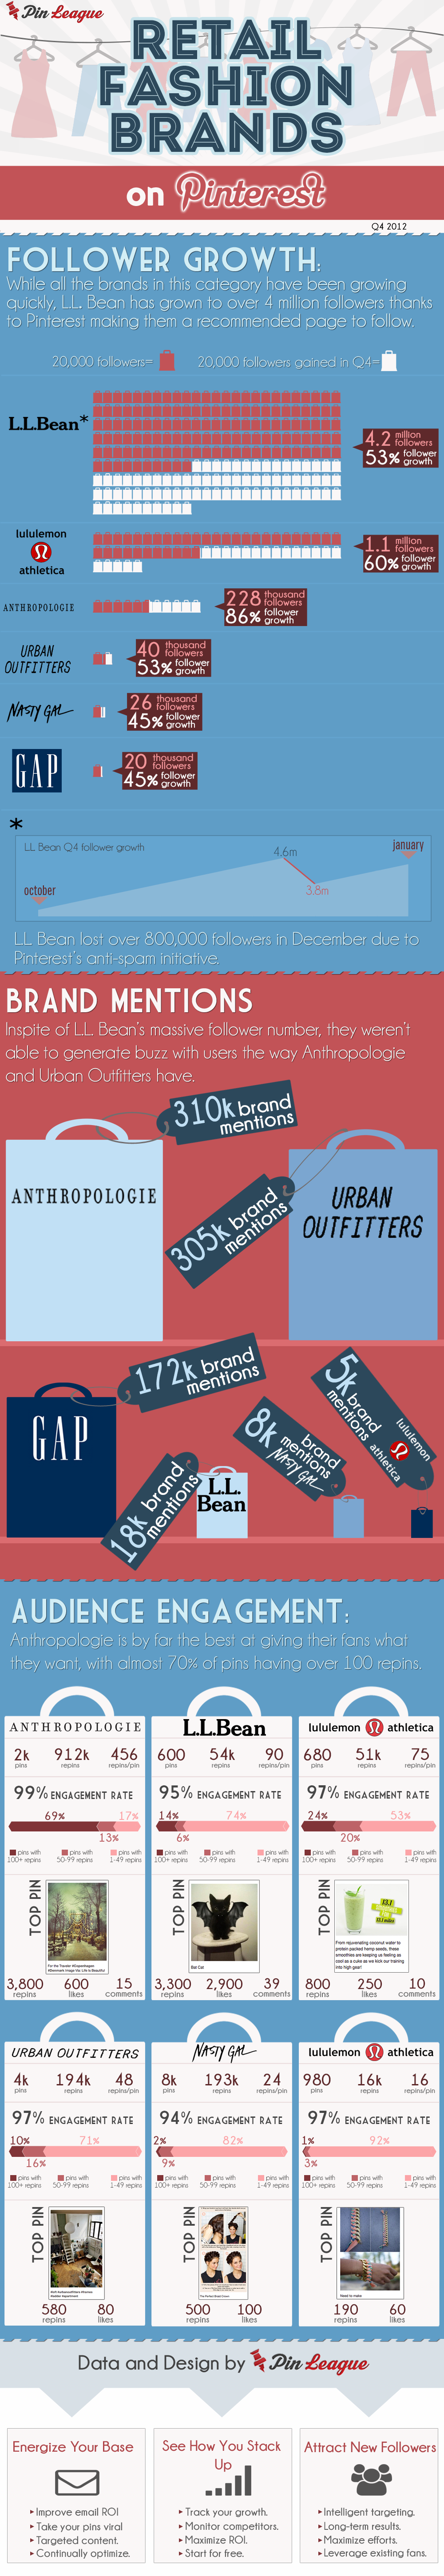 Retail fashion brands on pintrest